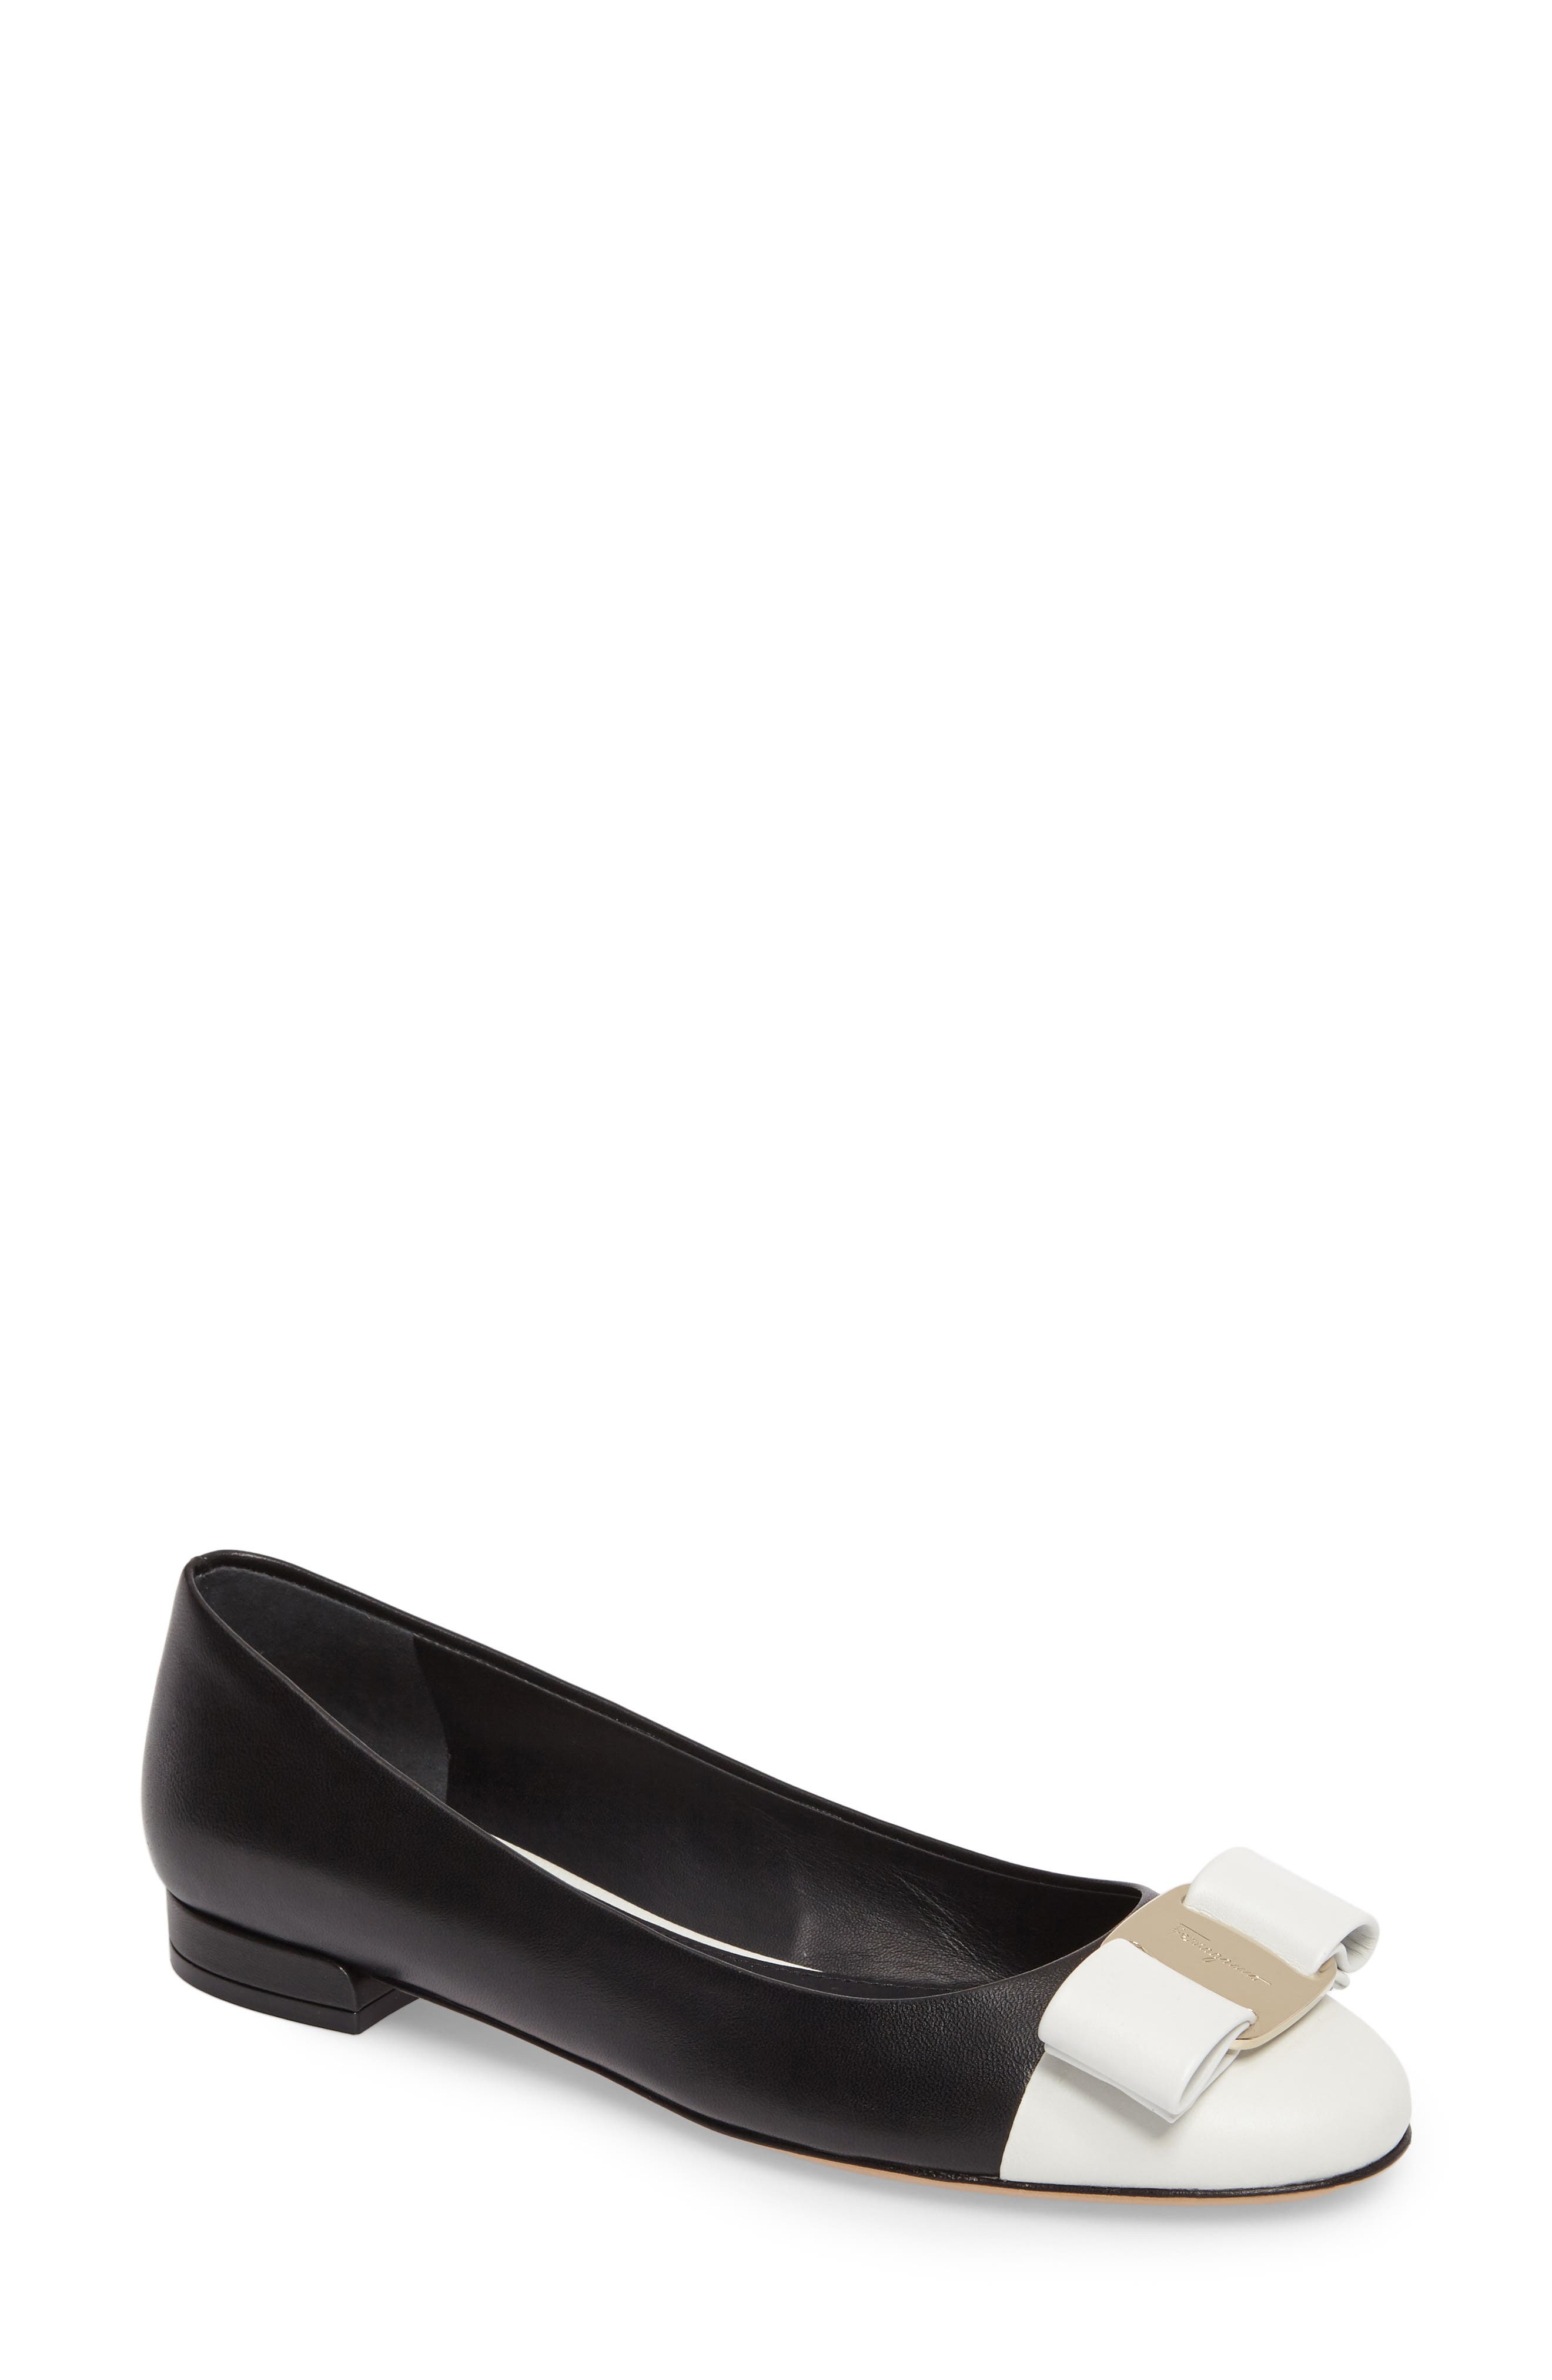 Varina Bow Flat,                         Main,                         color, Black/ White